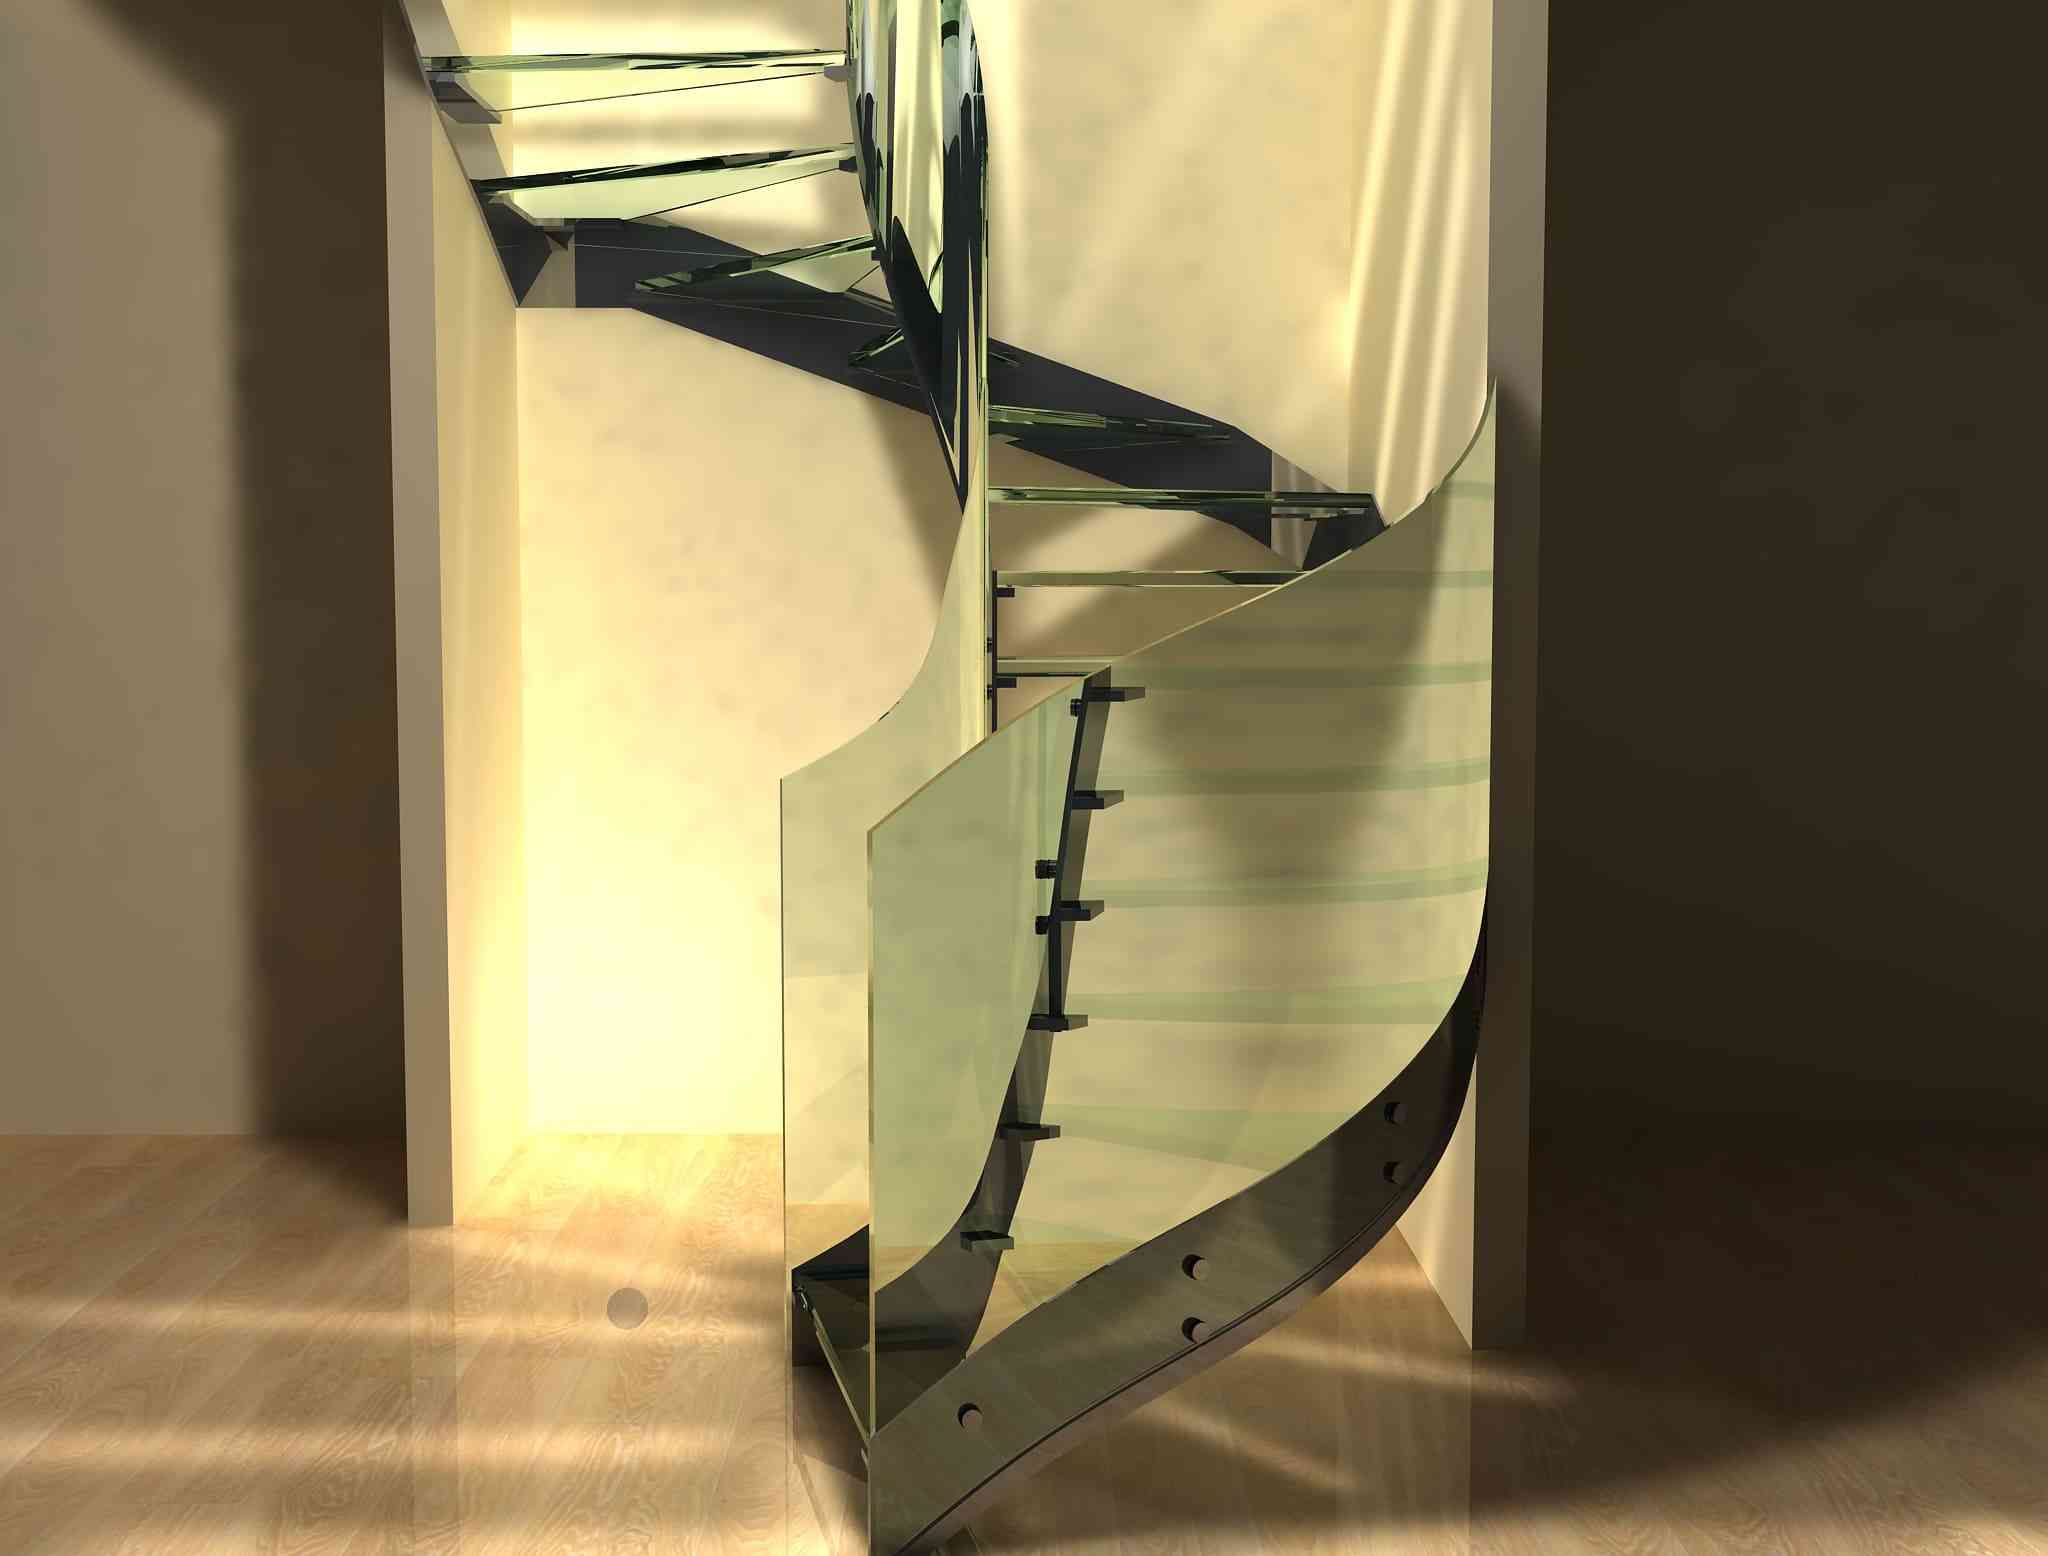 3d-scanner-measure-of-stairs-img-visualization1